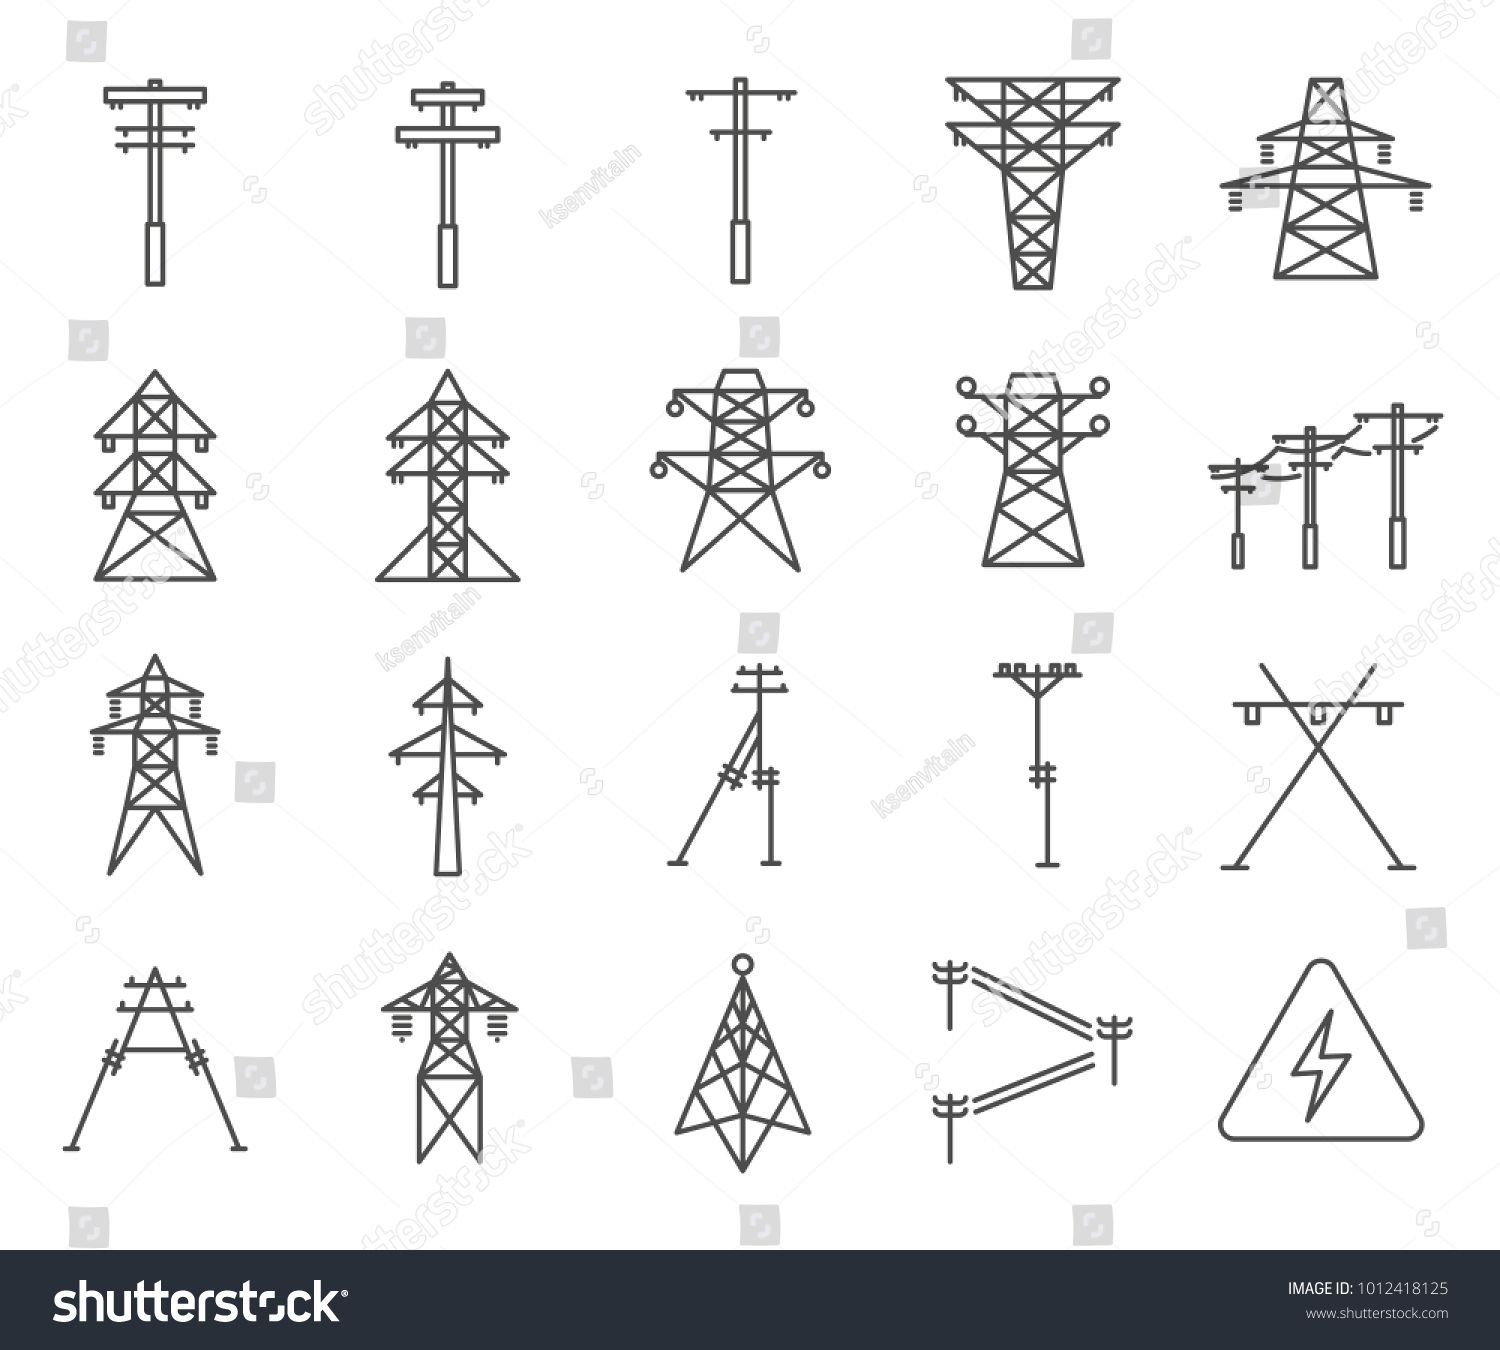 Simple Set Of Electric Tower Related Vector Line Icons Contains Such Icons As Electricity Grid Tower Lightning Di Graphic Design Business Electricity Tower